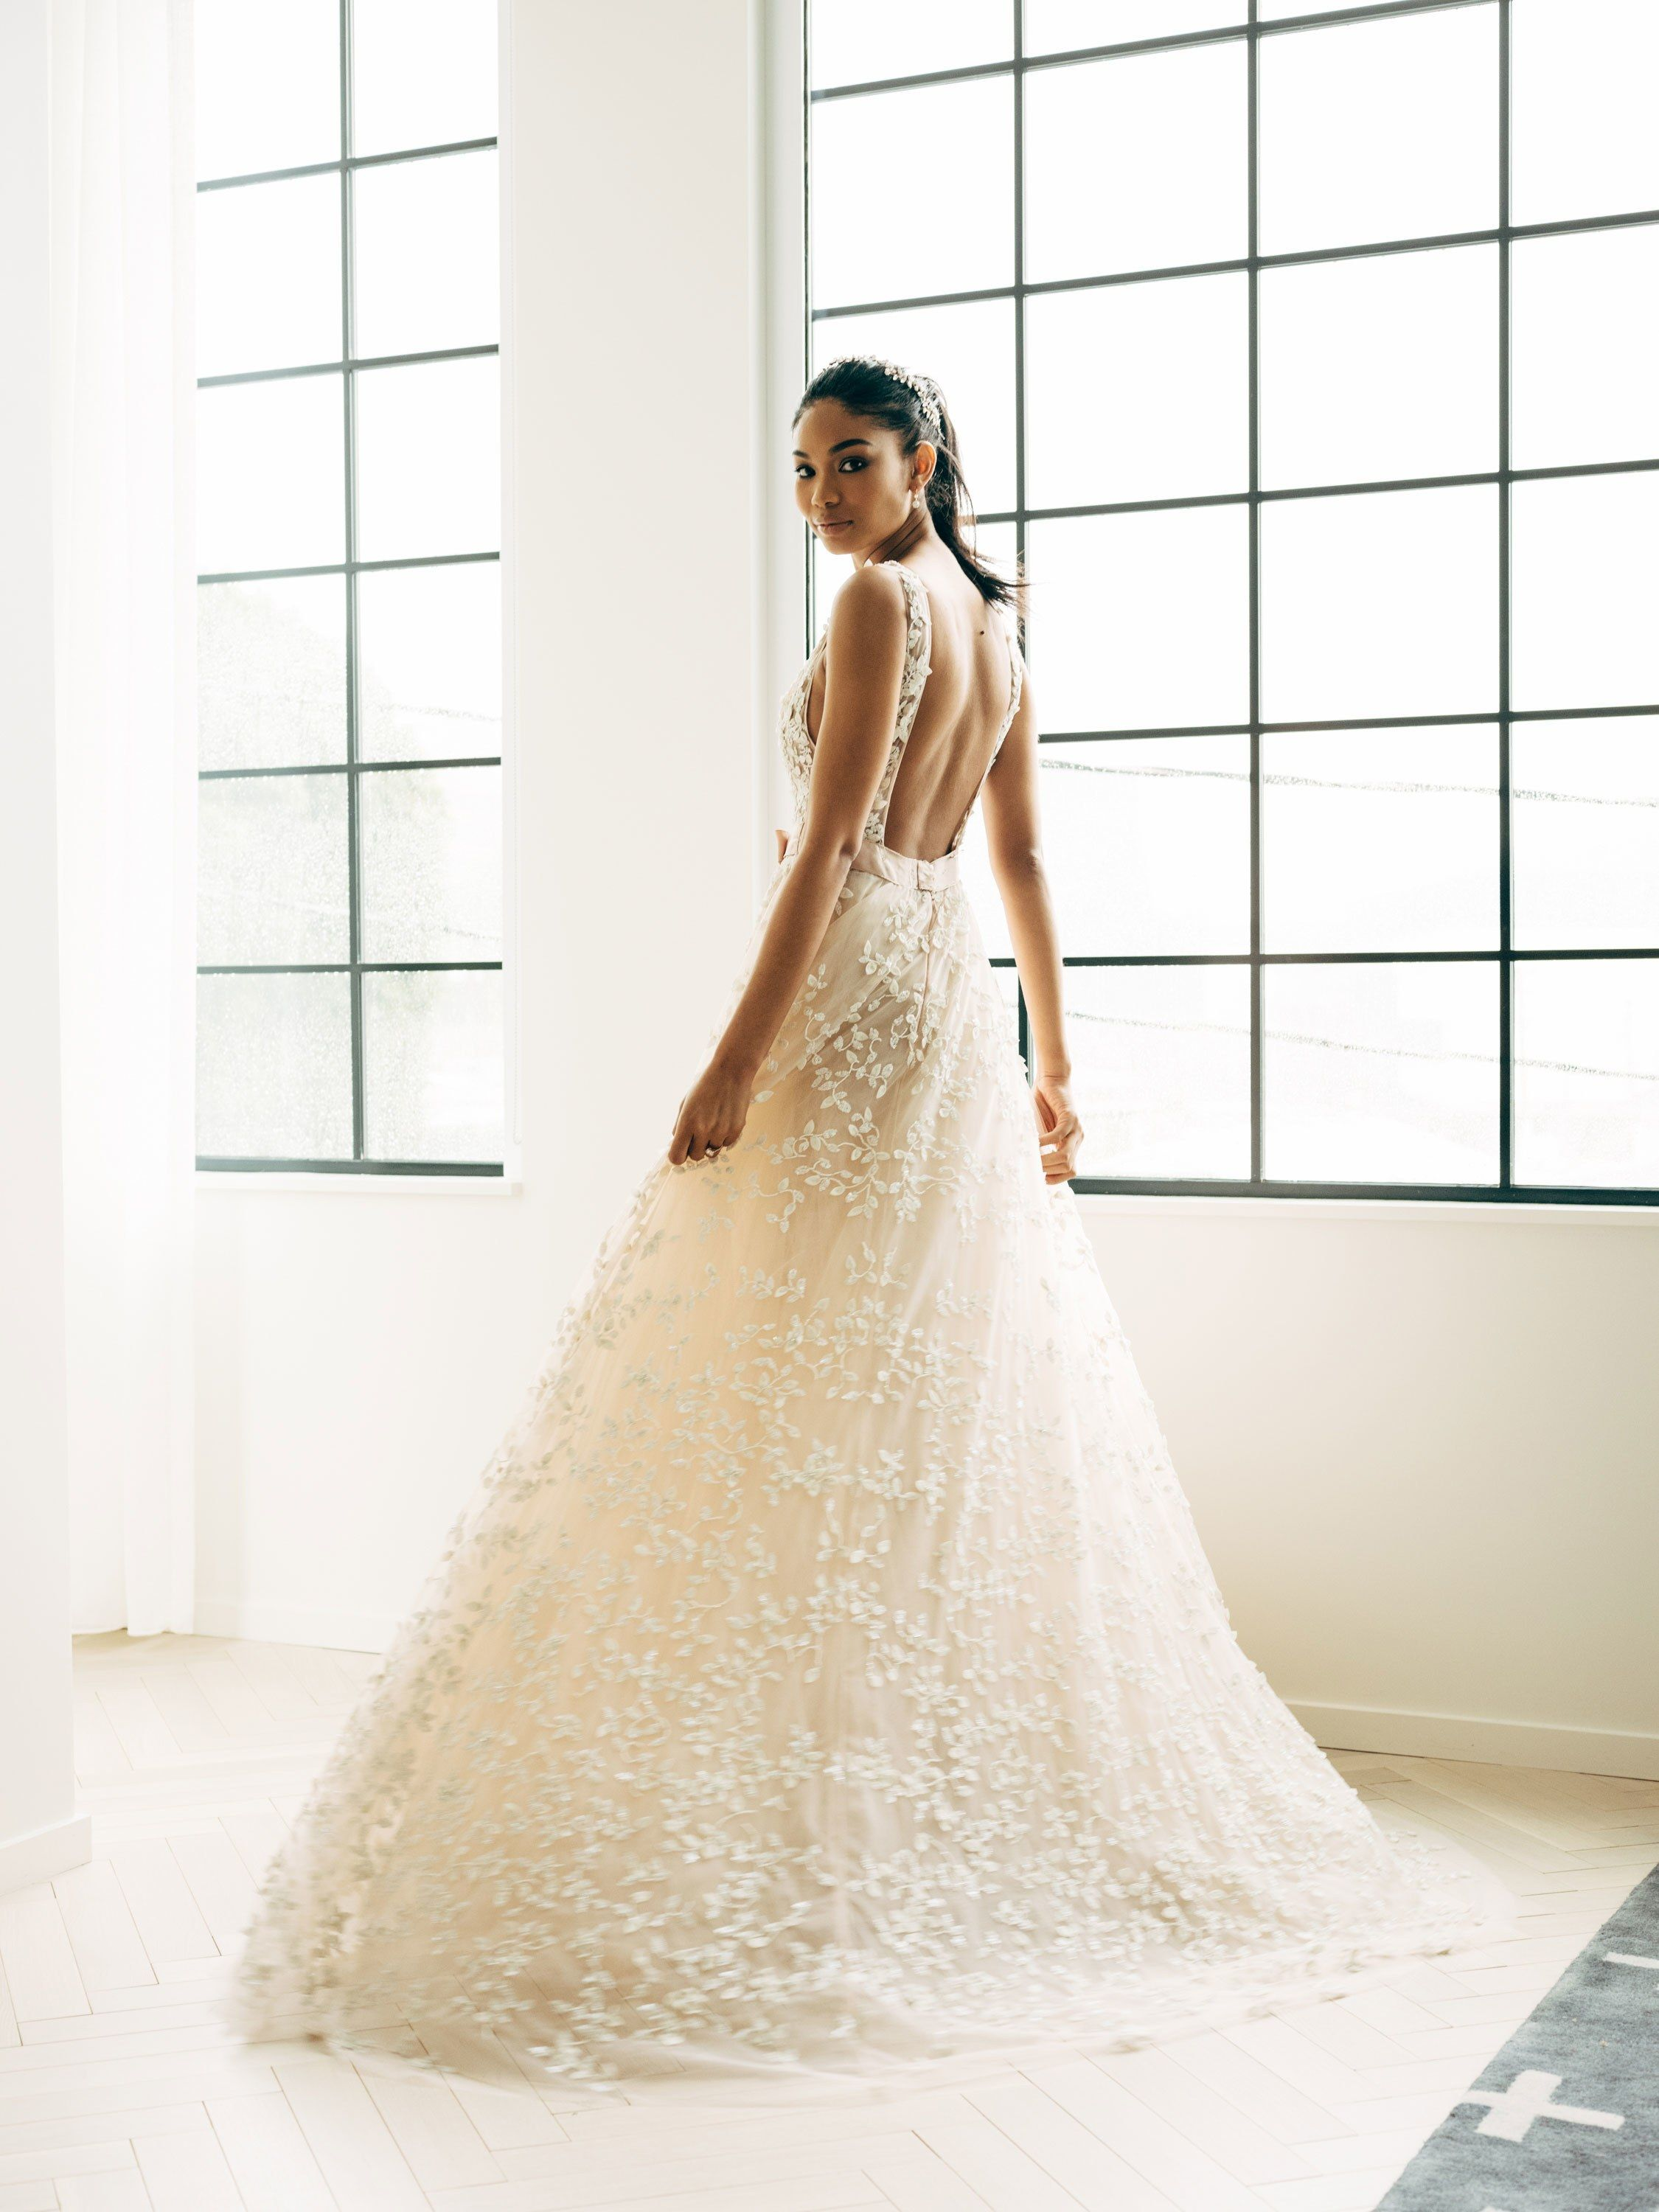 d68943a4d1287 Inside Chanel Iman s Final Wedding Dress Fitting Before Walking Down the  Aisle in Beverly Hills